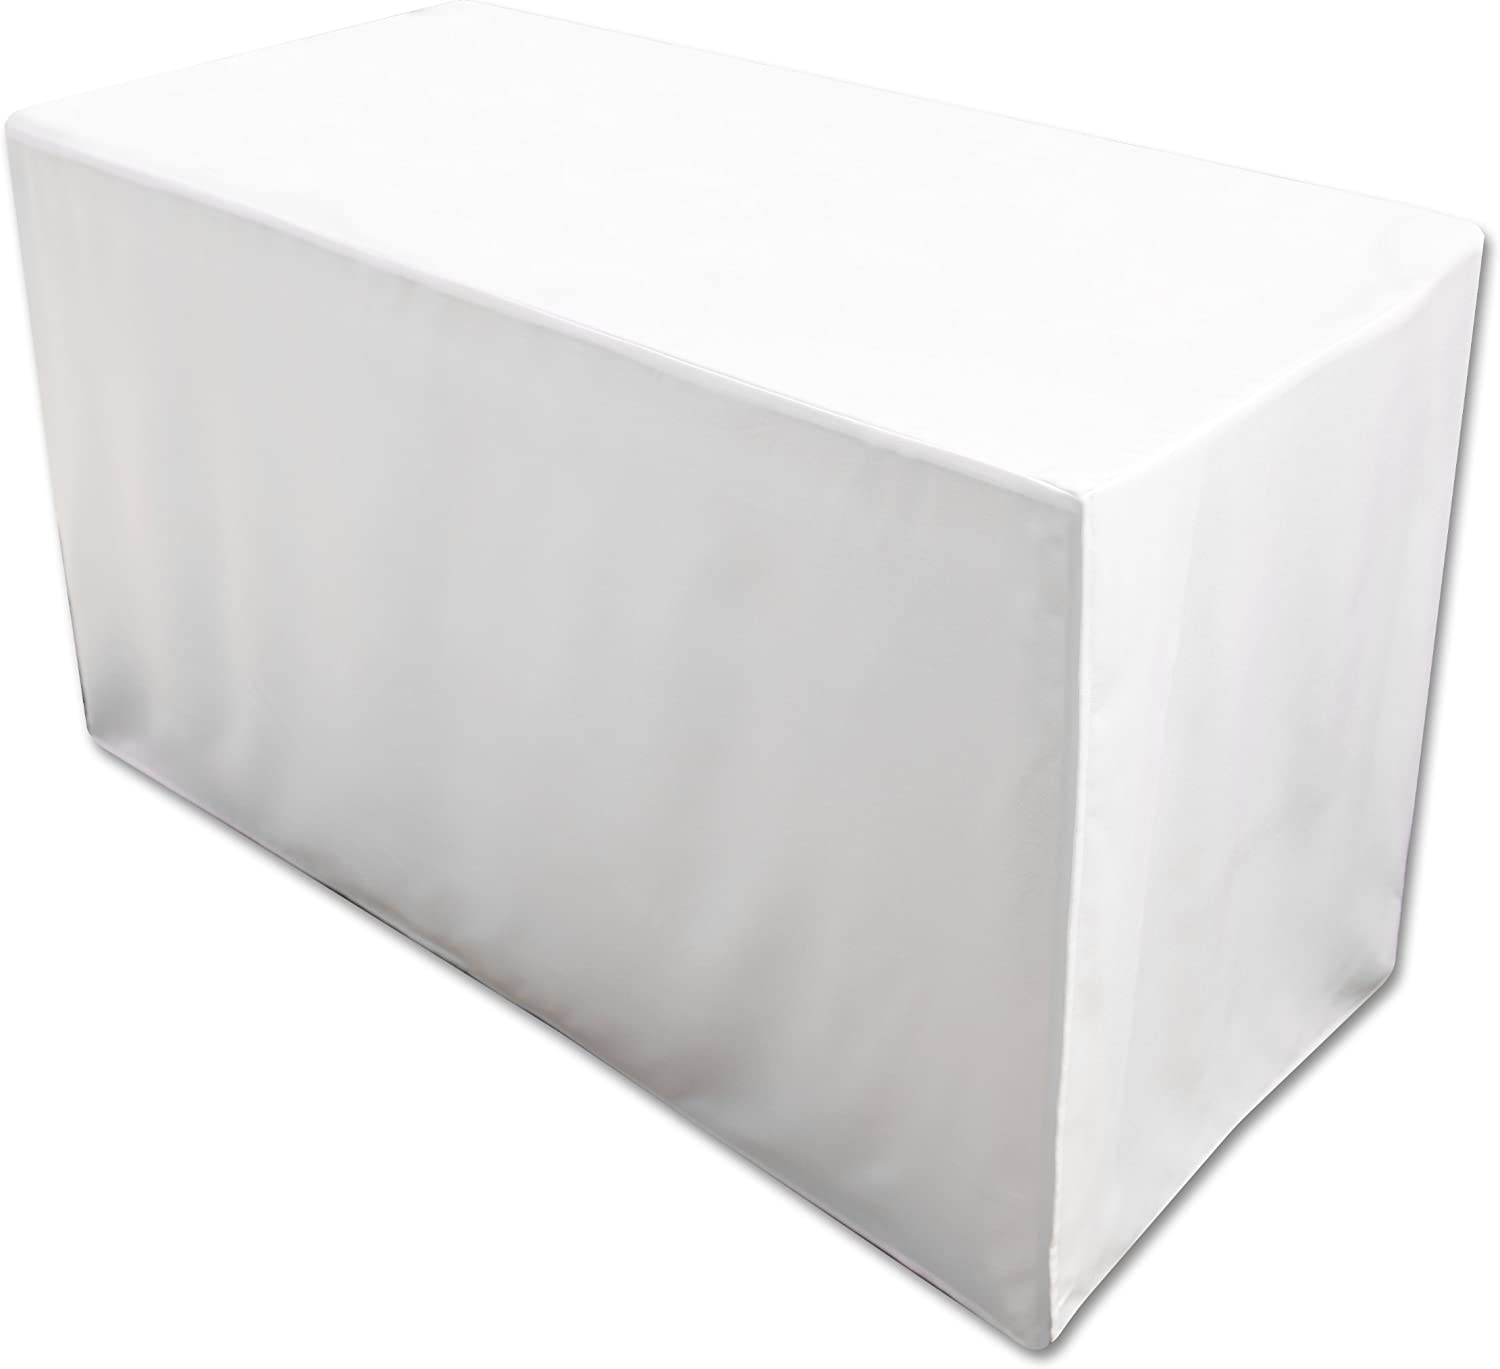 Amazon Com Folding Table Cover Fitted Tablecloth For 4 Foot Folding Table White Home Kitchen